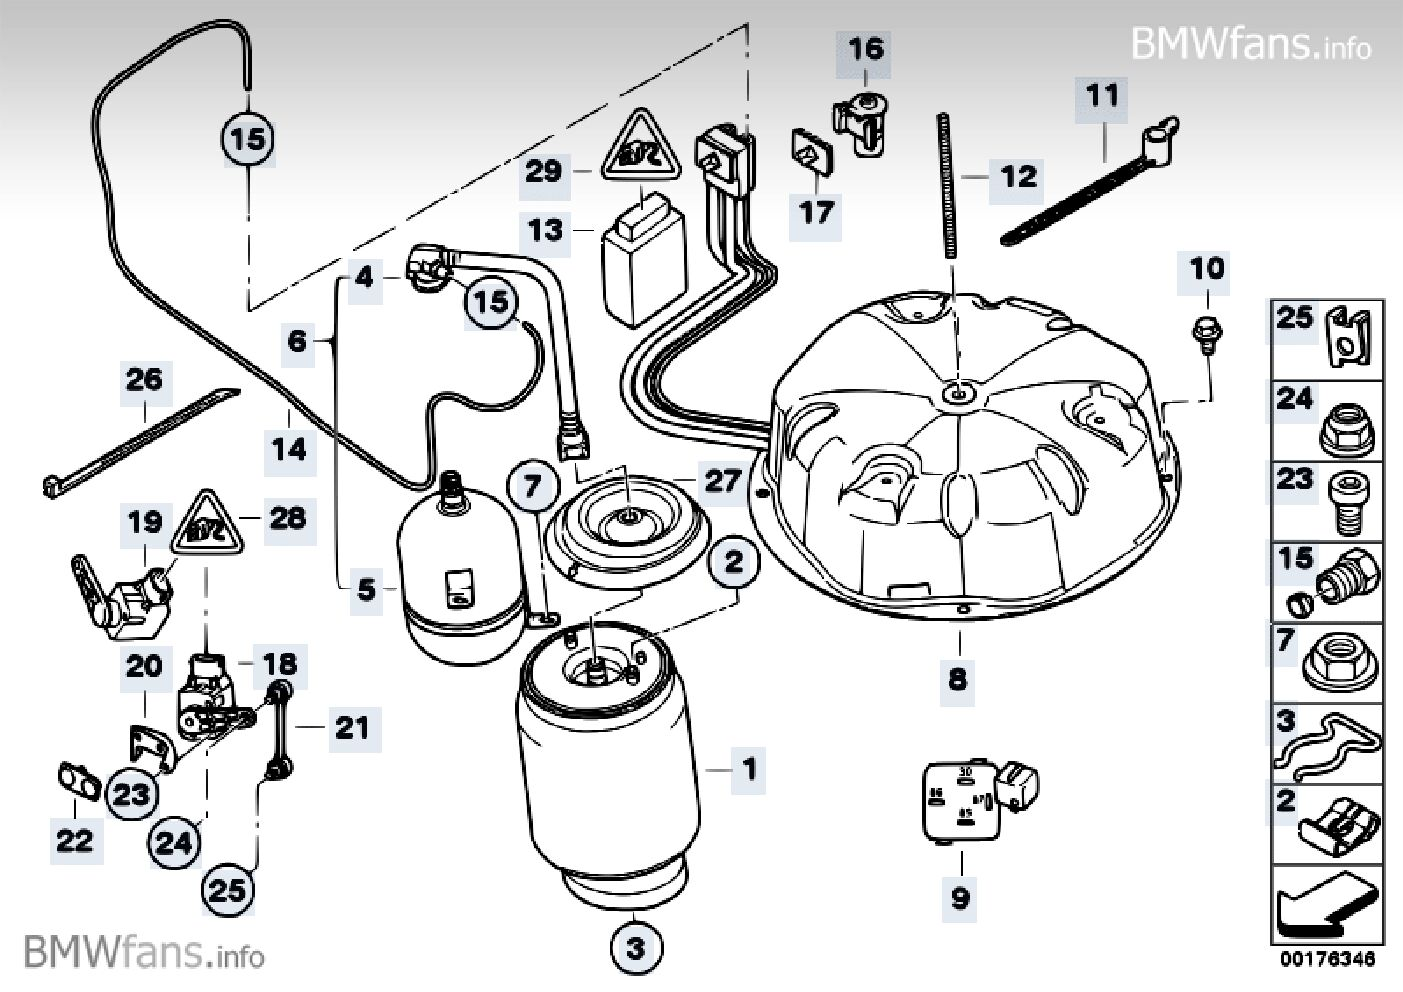 bmw x5 suspension diagram bmw x5 air suspension wiring diagram 2010 bmw x5 fuse diagram #8